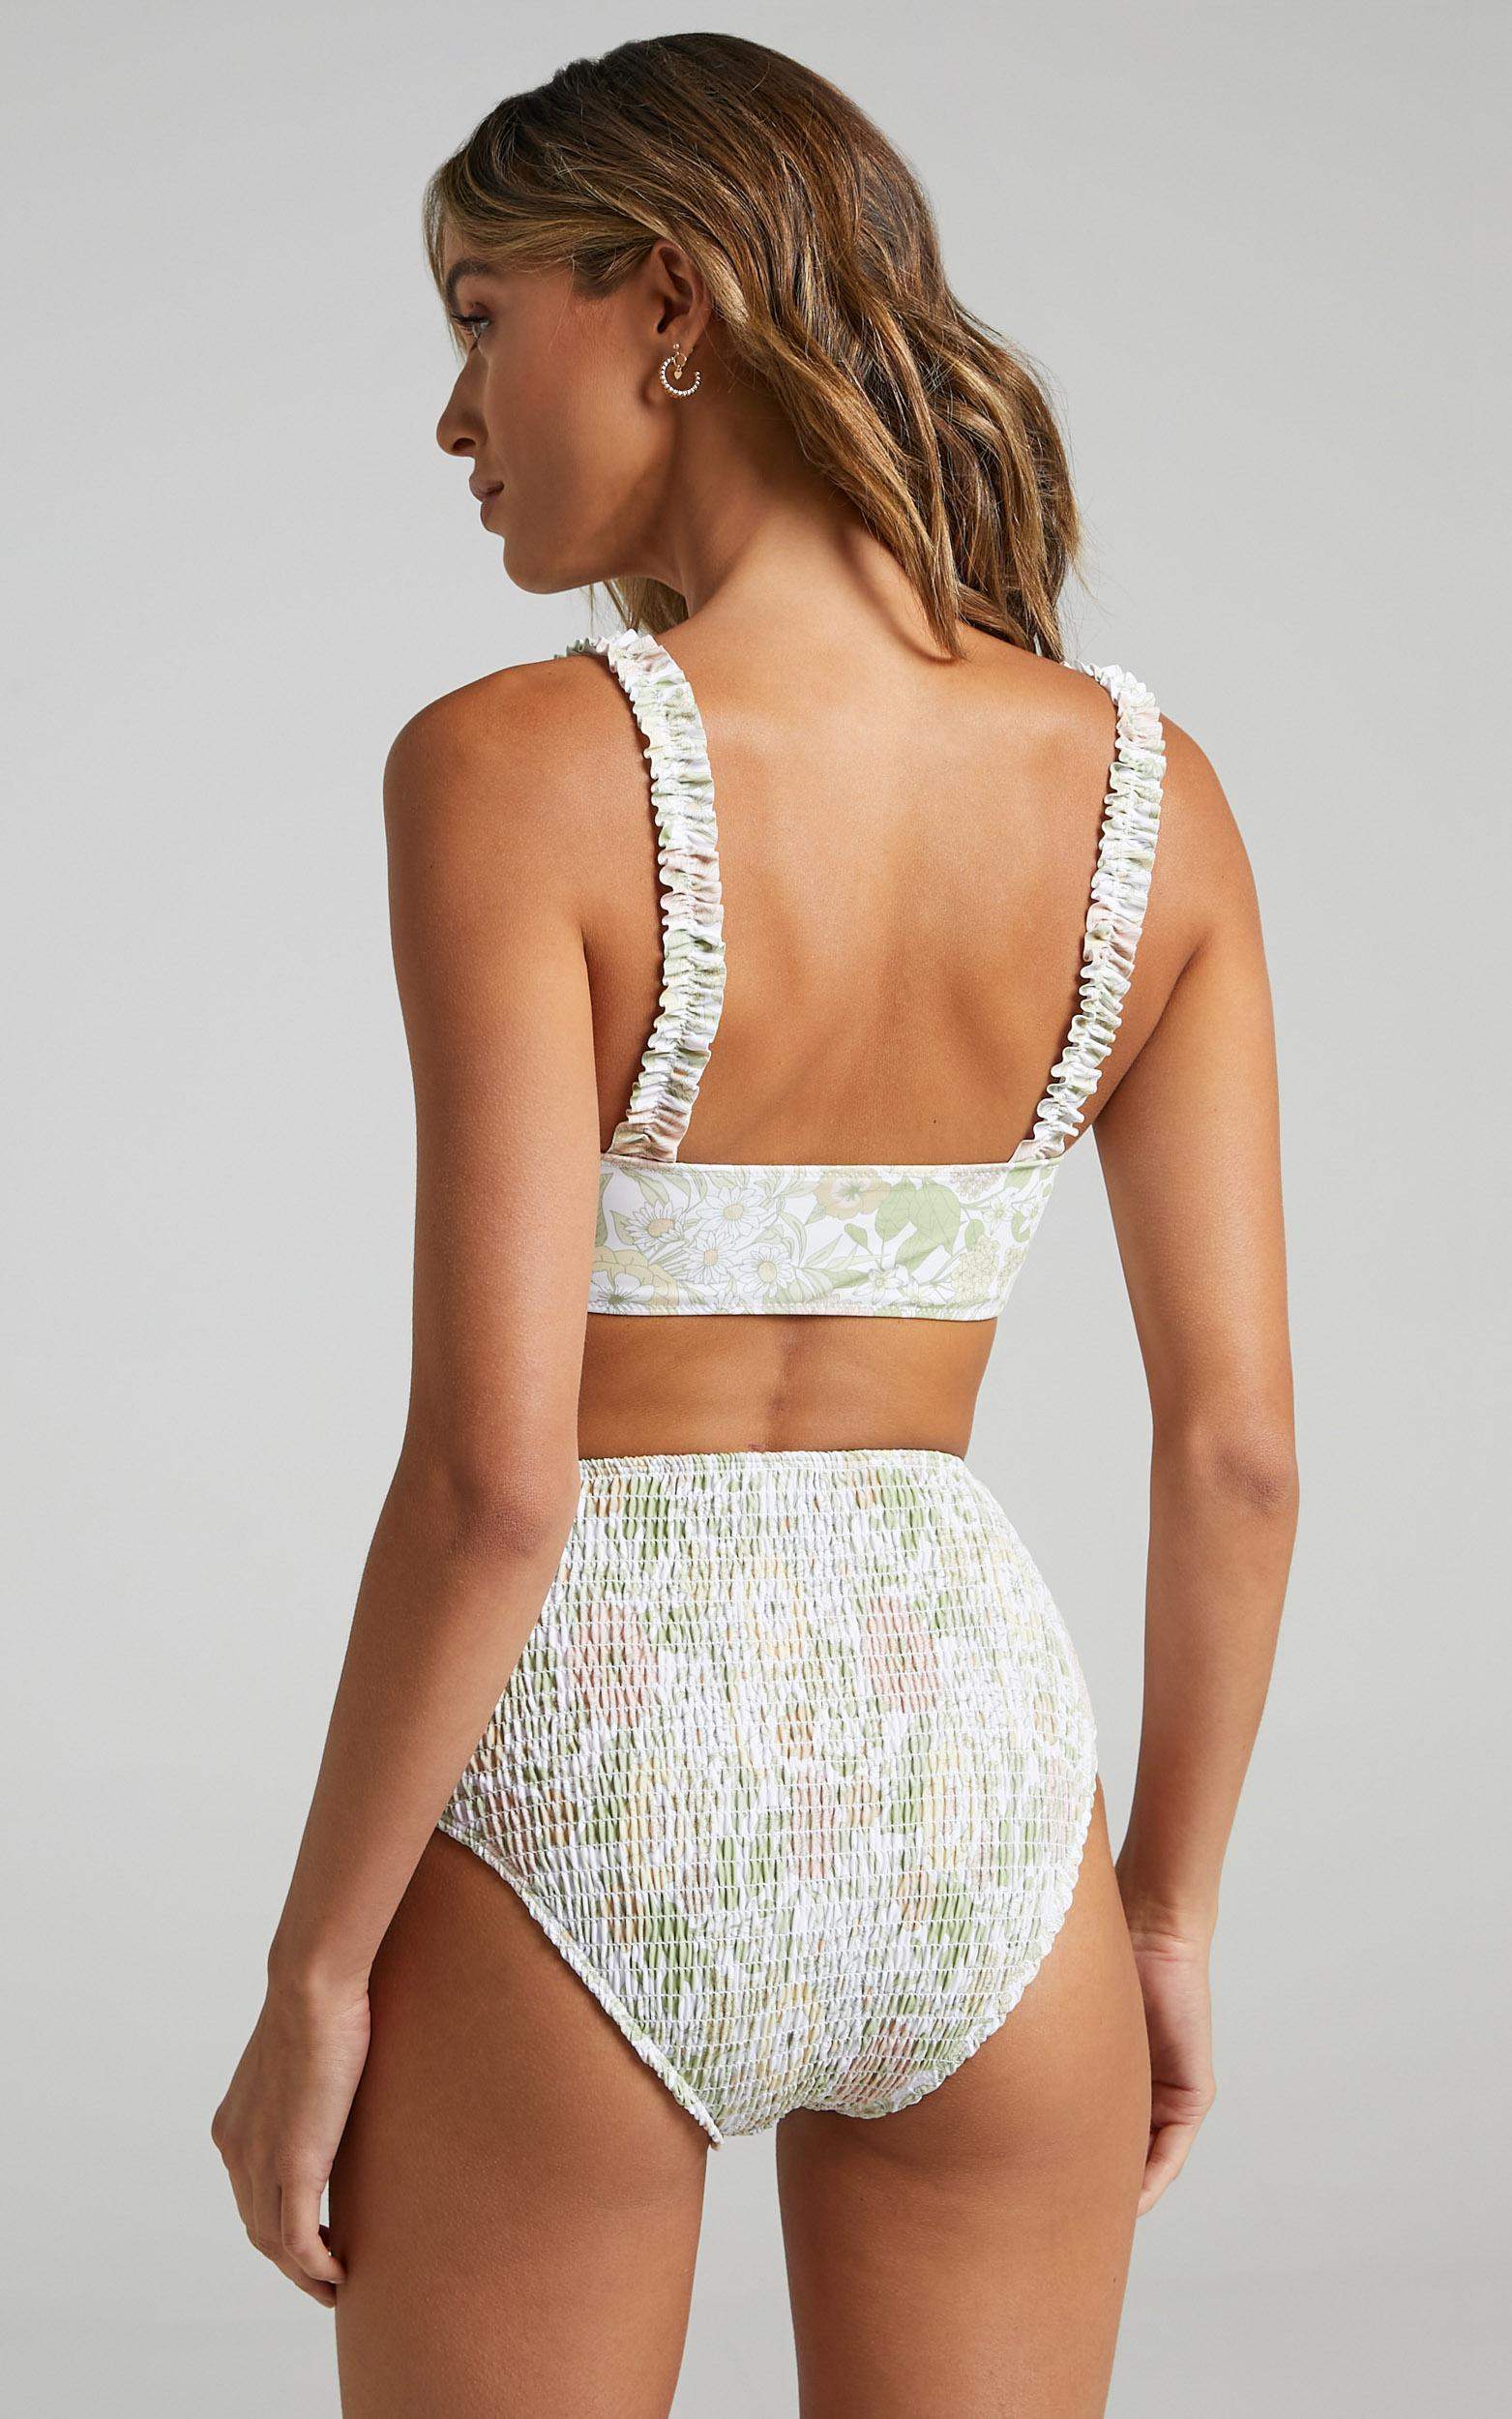 Charlie Holiday - Newport Smocked Brief in Forest Olive Floral - XS, GRN1, hi-res image number null